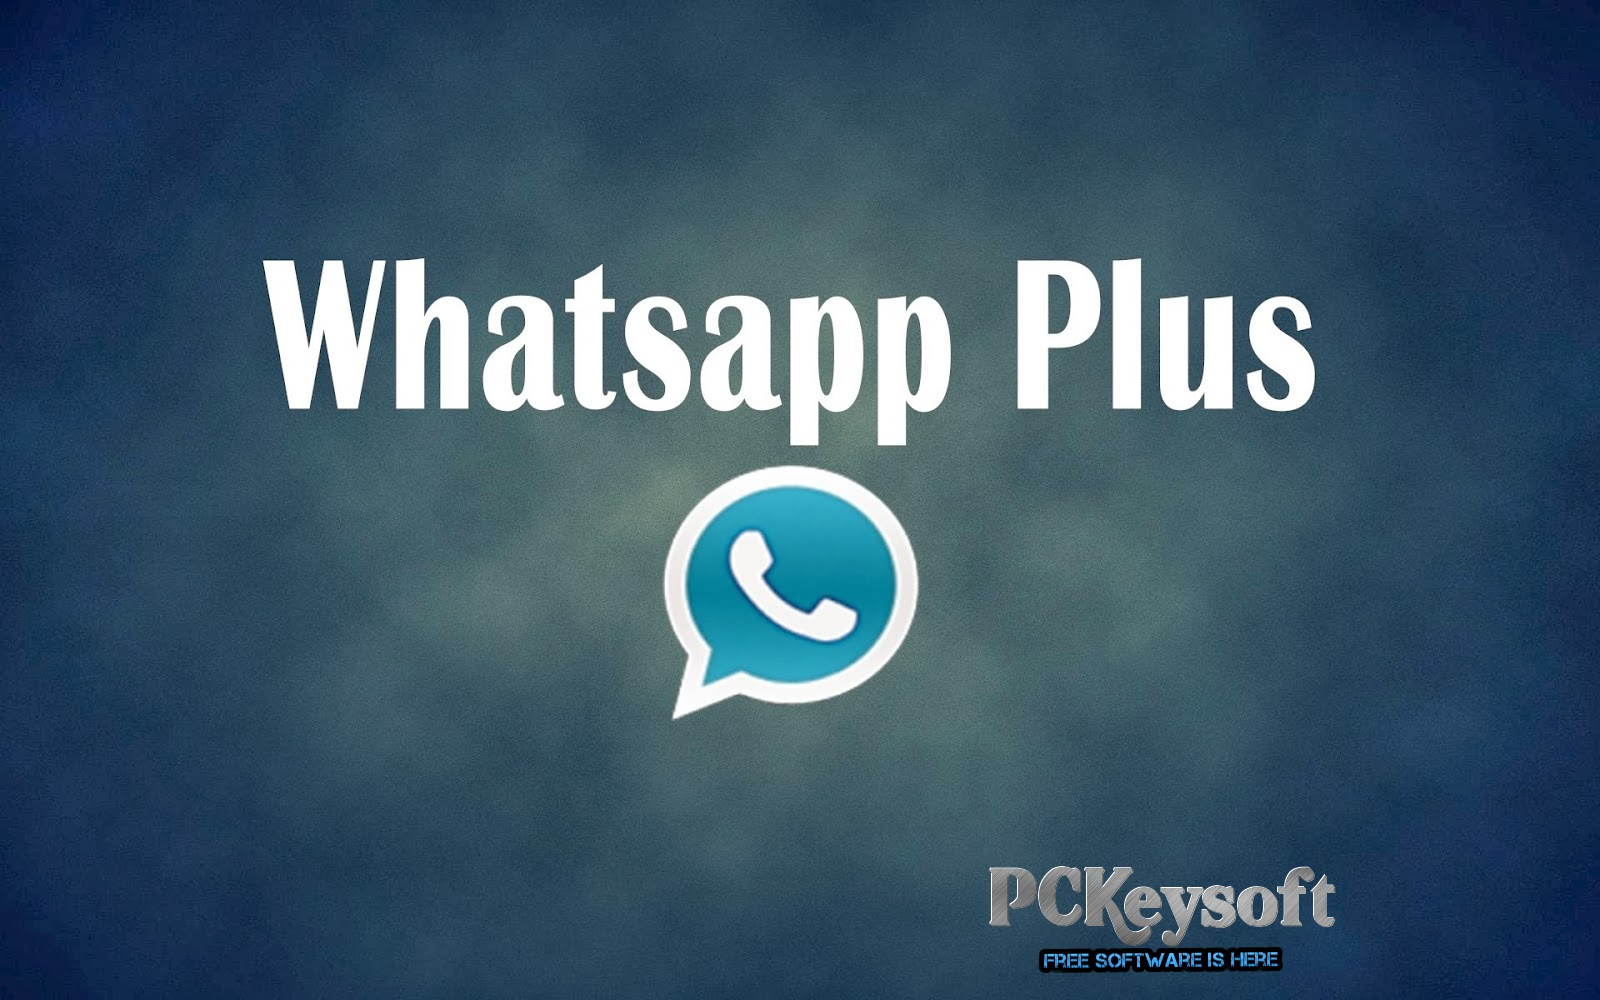 whatsapp plus for windows phone free download